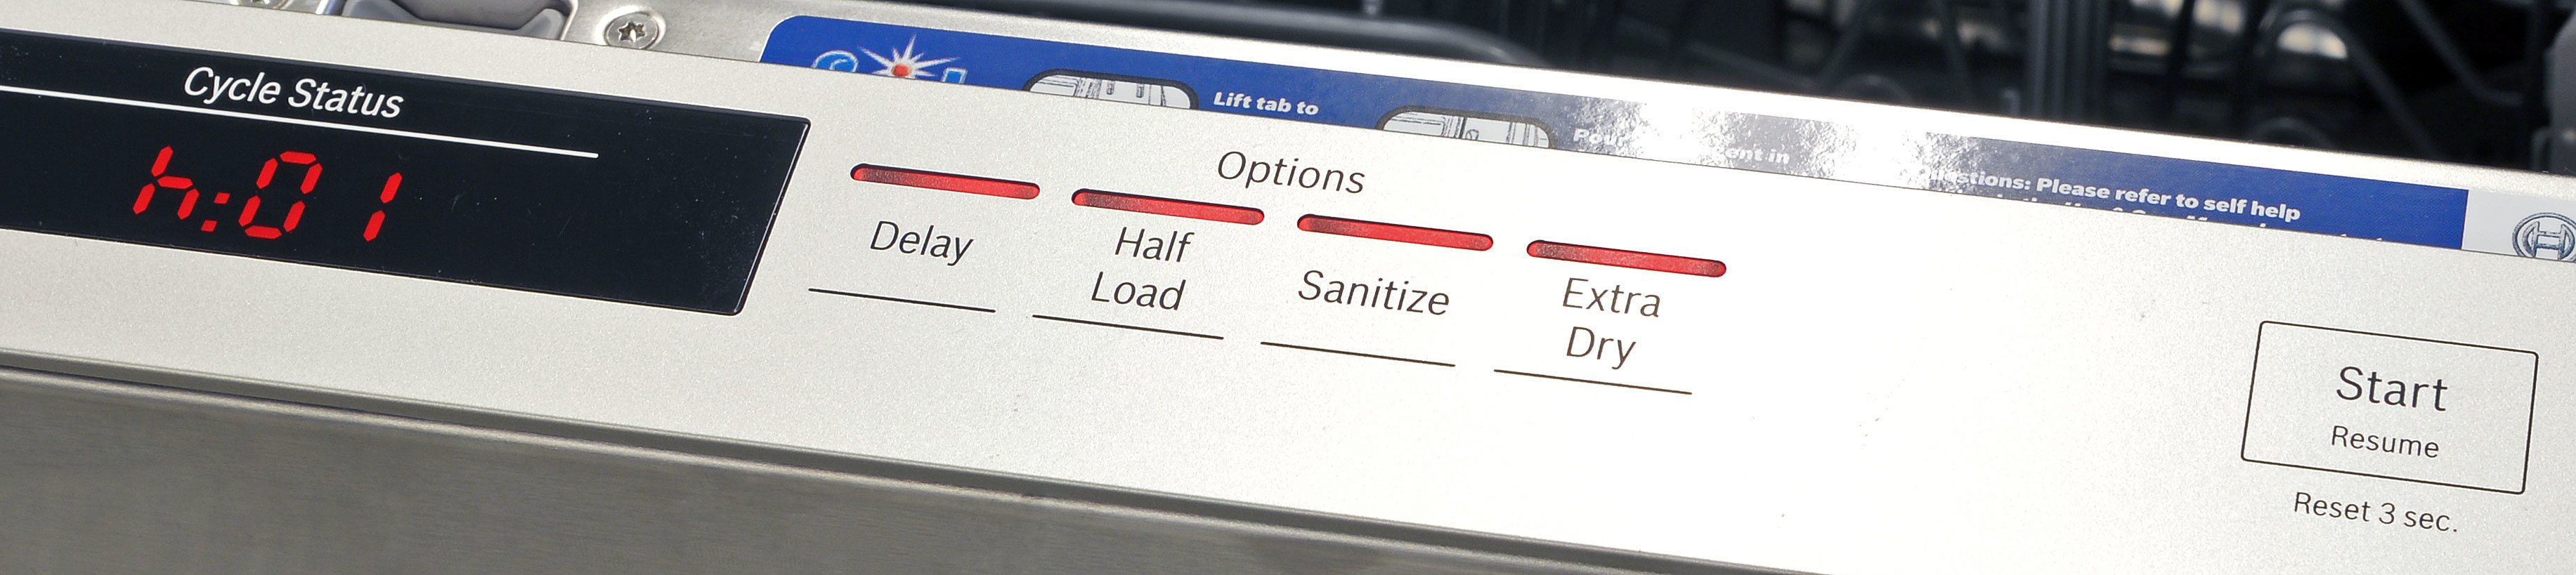 The 300 series also has four features. You can use Delay on anything, but the other three options only apply to Normal, Heavy, and Auto cycles.